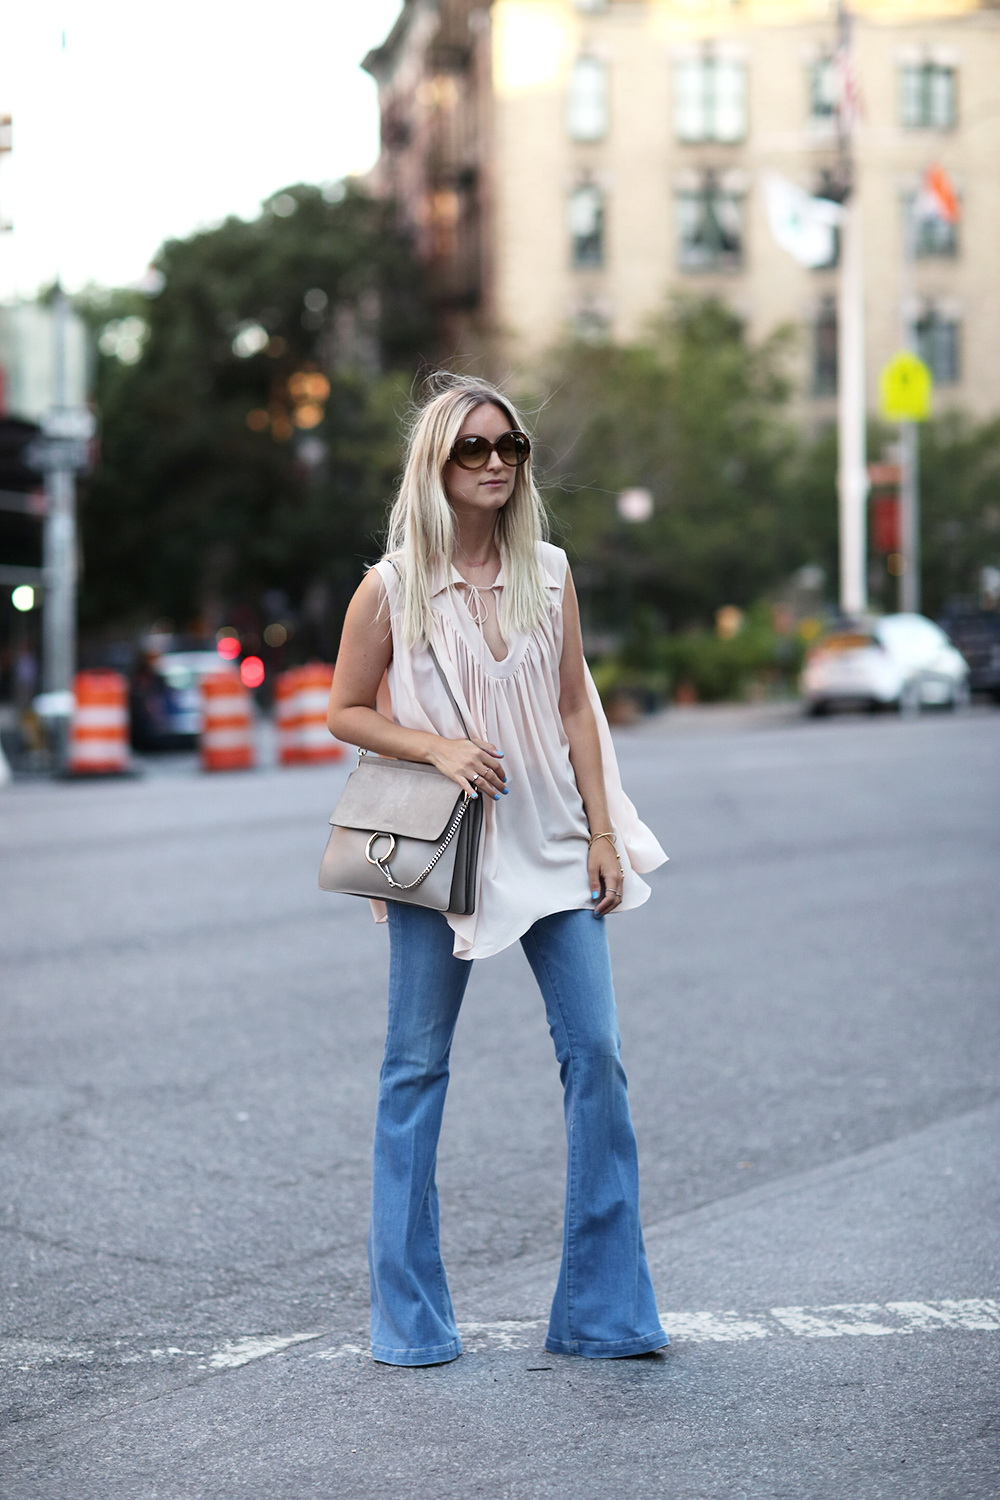 854035fcf9 Non-Boring 22 Ways To Wear Flare Jeans 2019